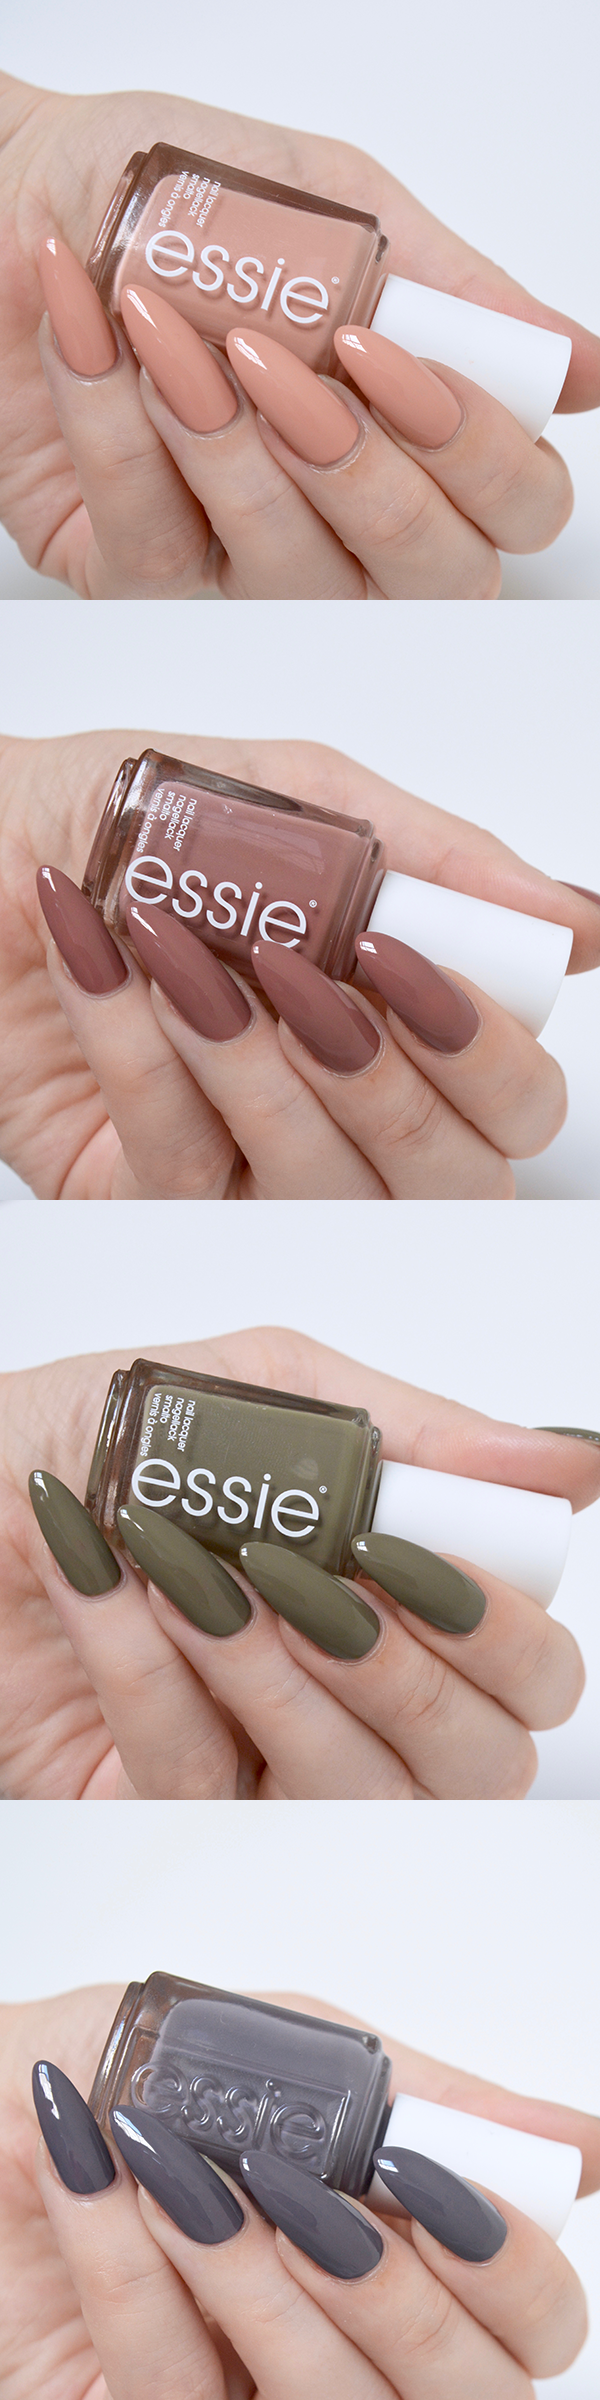 Essie Wild Nudes Collection | Nude, Collection and Make up